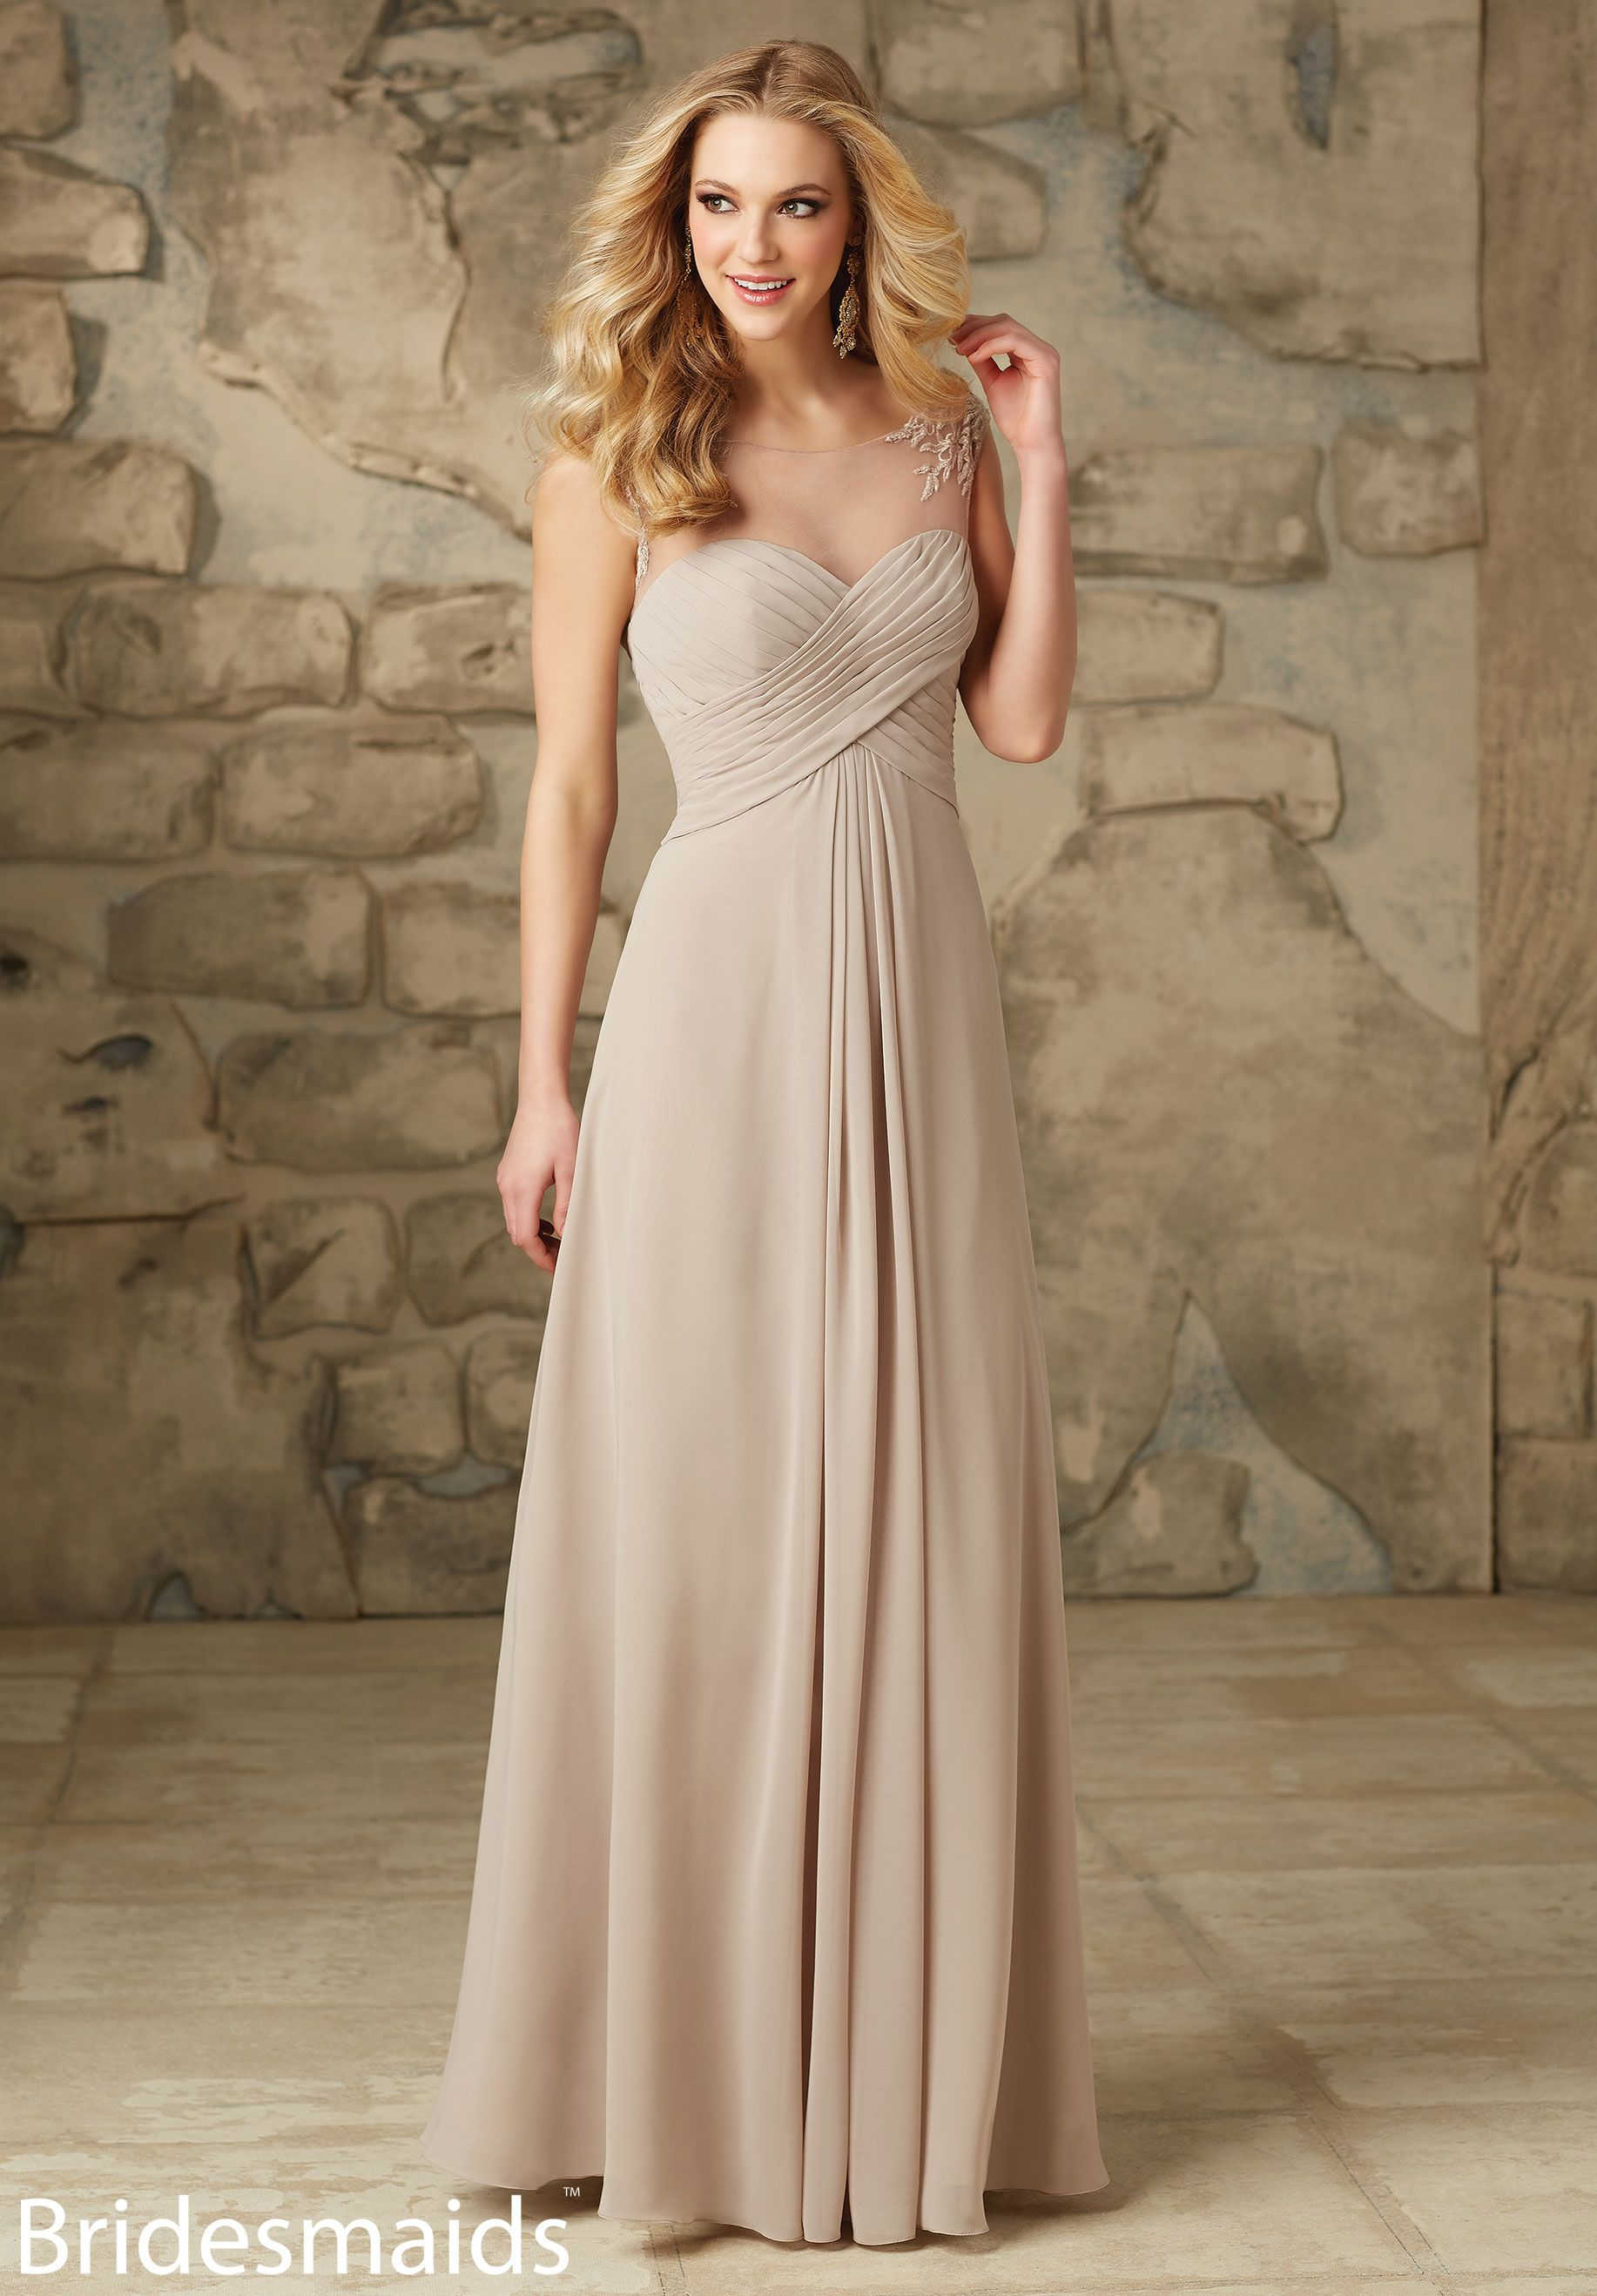 Bridesmaids dresses chiffon with embroidery chiffon with embroidery shop the mori lee 106 bridesmaid dress this long chiffon gown features an illusion neckline sweetheart bodice and gathered a line skirt ombrellifo Images